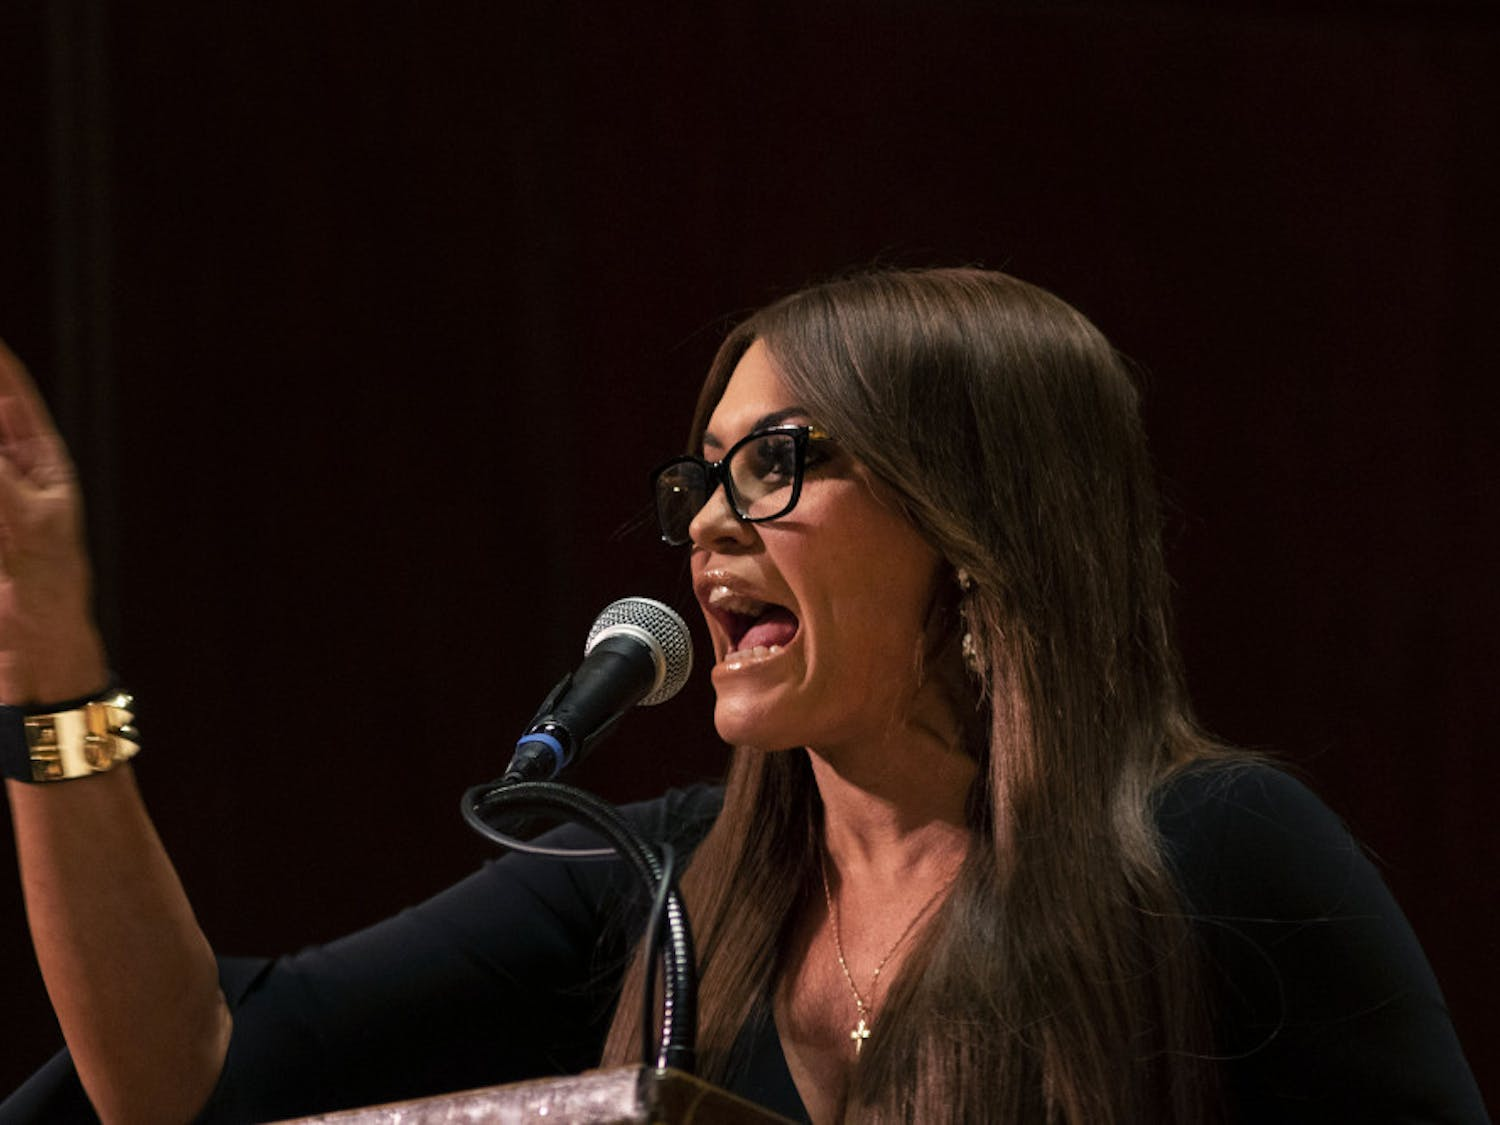 Kimberly Guilfoyle, a senior adviser to Donald Trump's 2020 campaign and Donald Trump Jr.'s girlfriend, speaks Thursday evening in University Auditorium. Guilfoyle spoke about her upbringing, her relationship with the Trump family and her political philosophy.